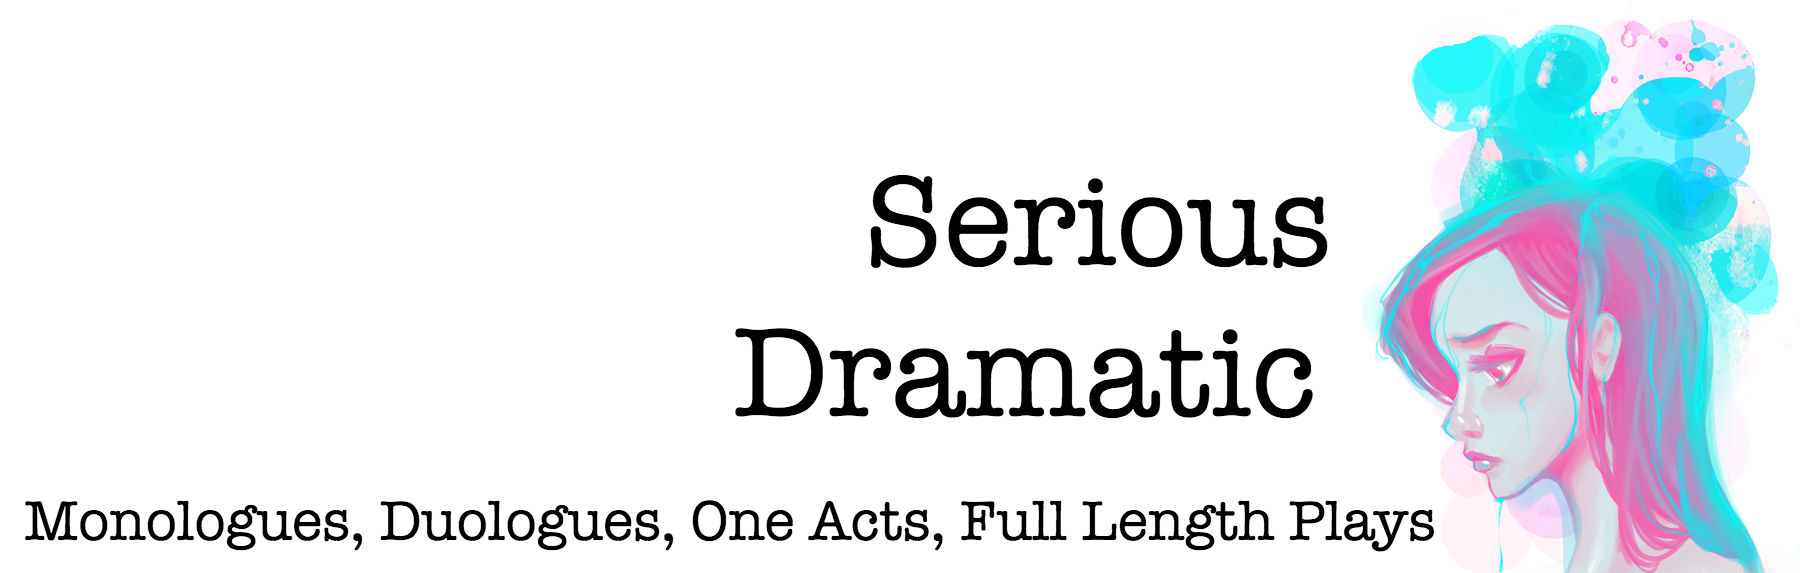 Free Serious Dramatic Scripts Stage Plays Drama